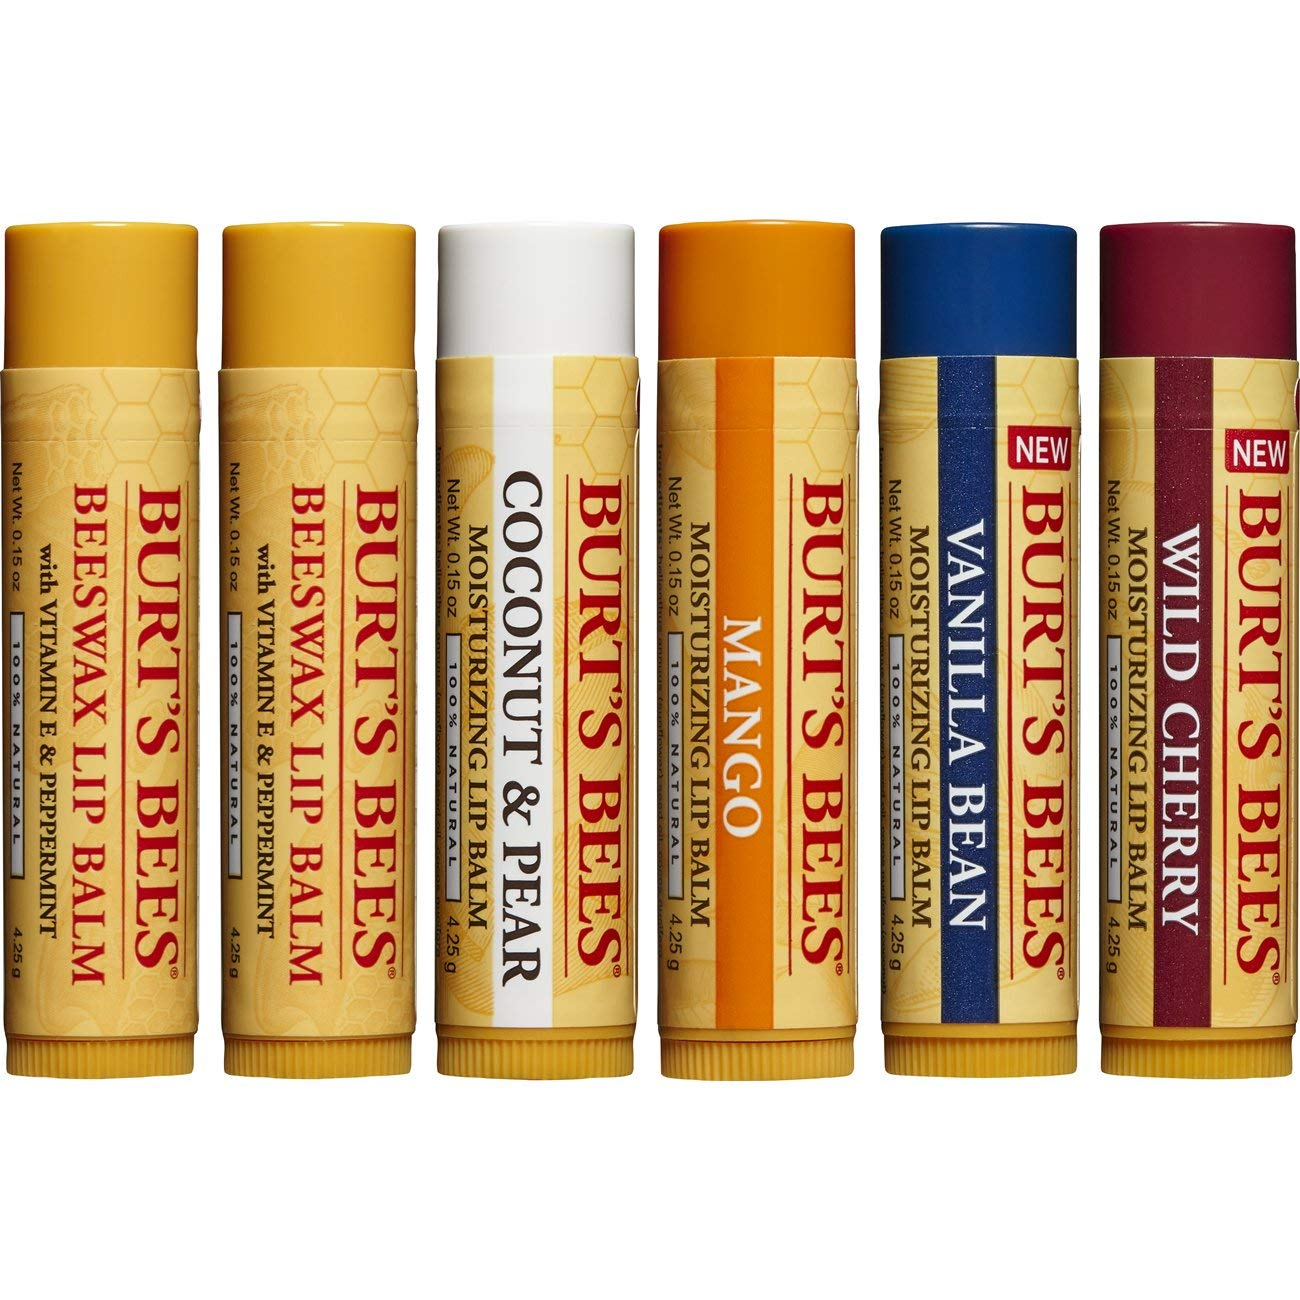 Burt's Bees 100% Natural Moisturizing Lip Balm, Multipack -  Original Beeswax, Coconut & Pear, Vanilla Bean, Mango & Wild Cherry with Beeswax & Fruit Extracts - 6 Tubes by Burt's Bees